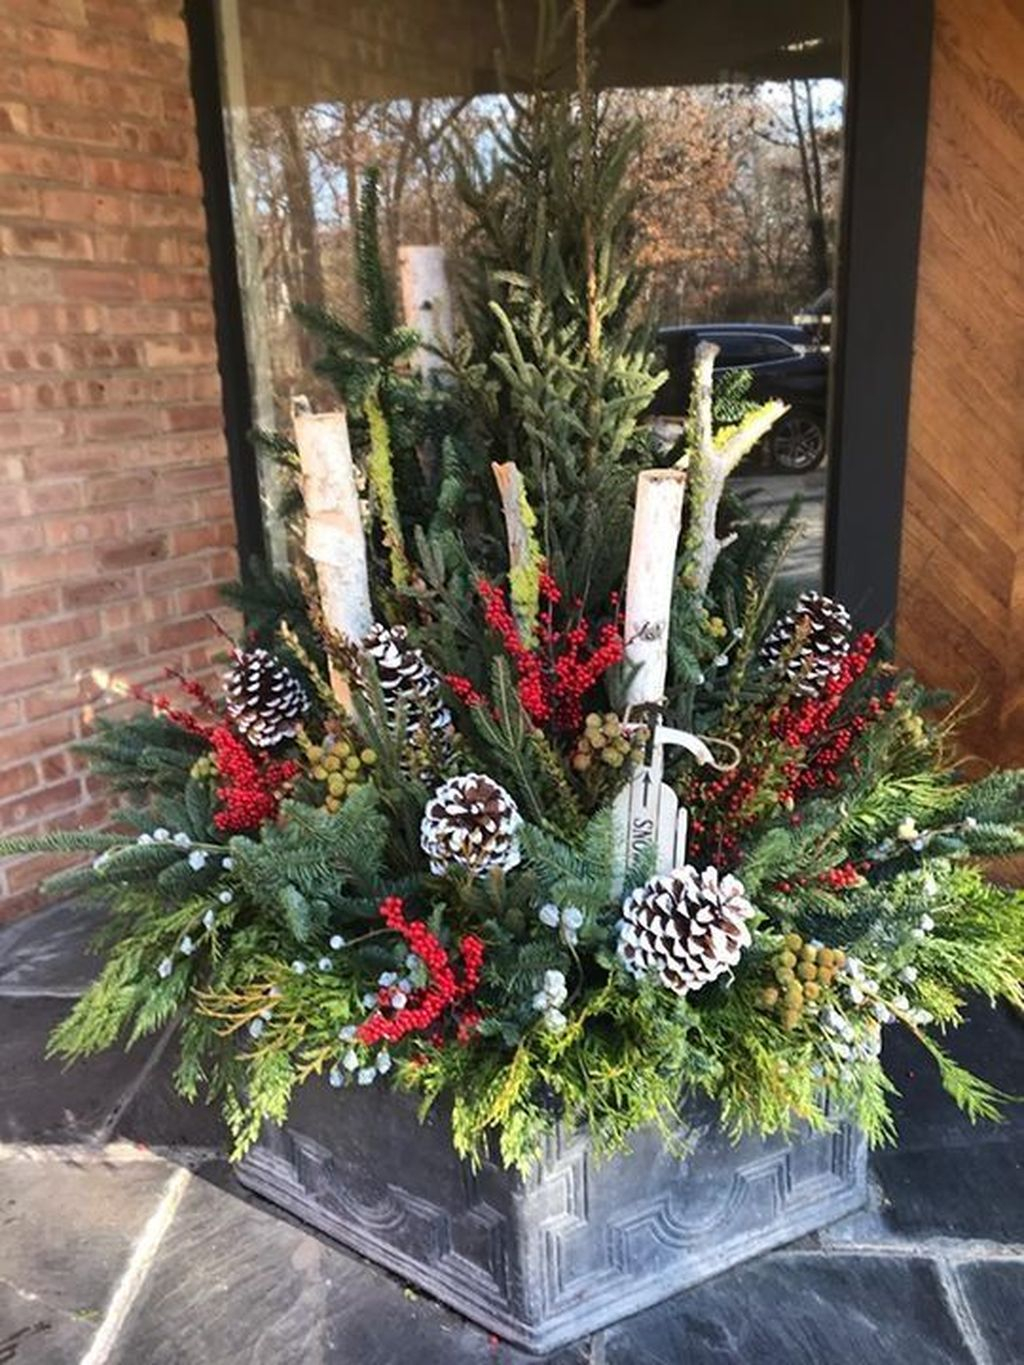 Marvelous Outdoor Holiday Planter Ideas To Beauty Porch Décor 34